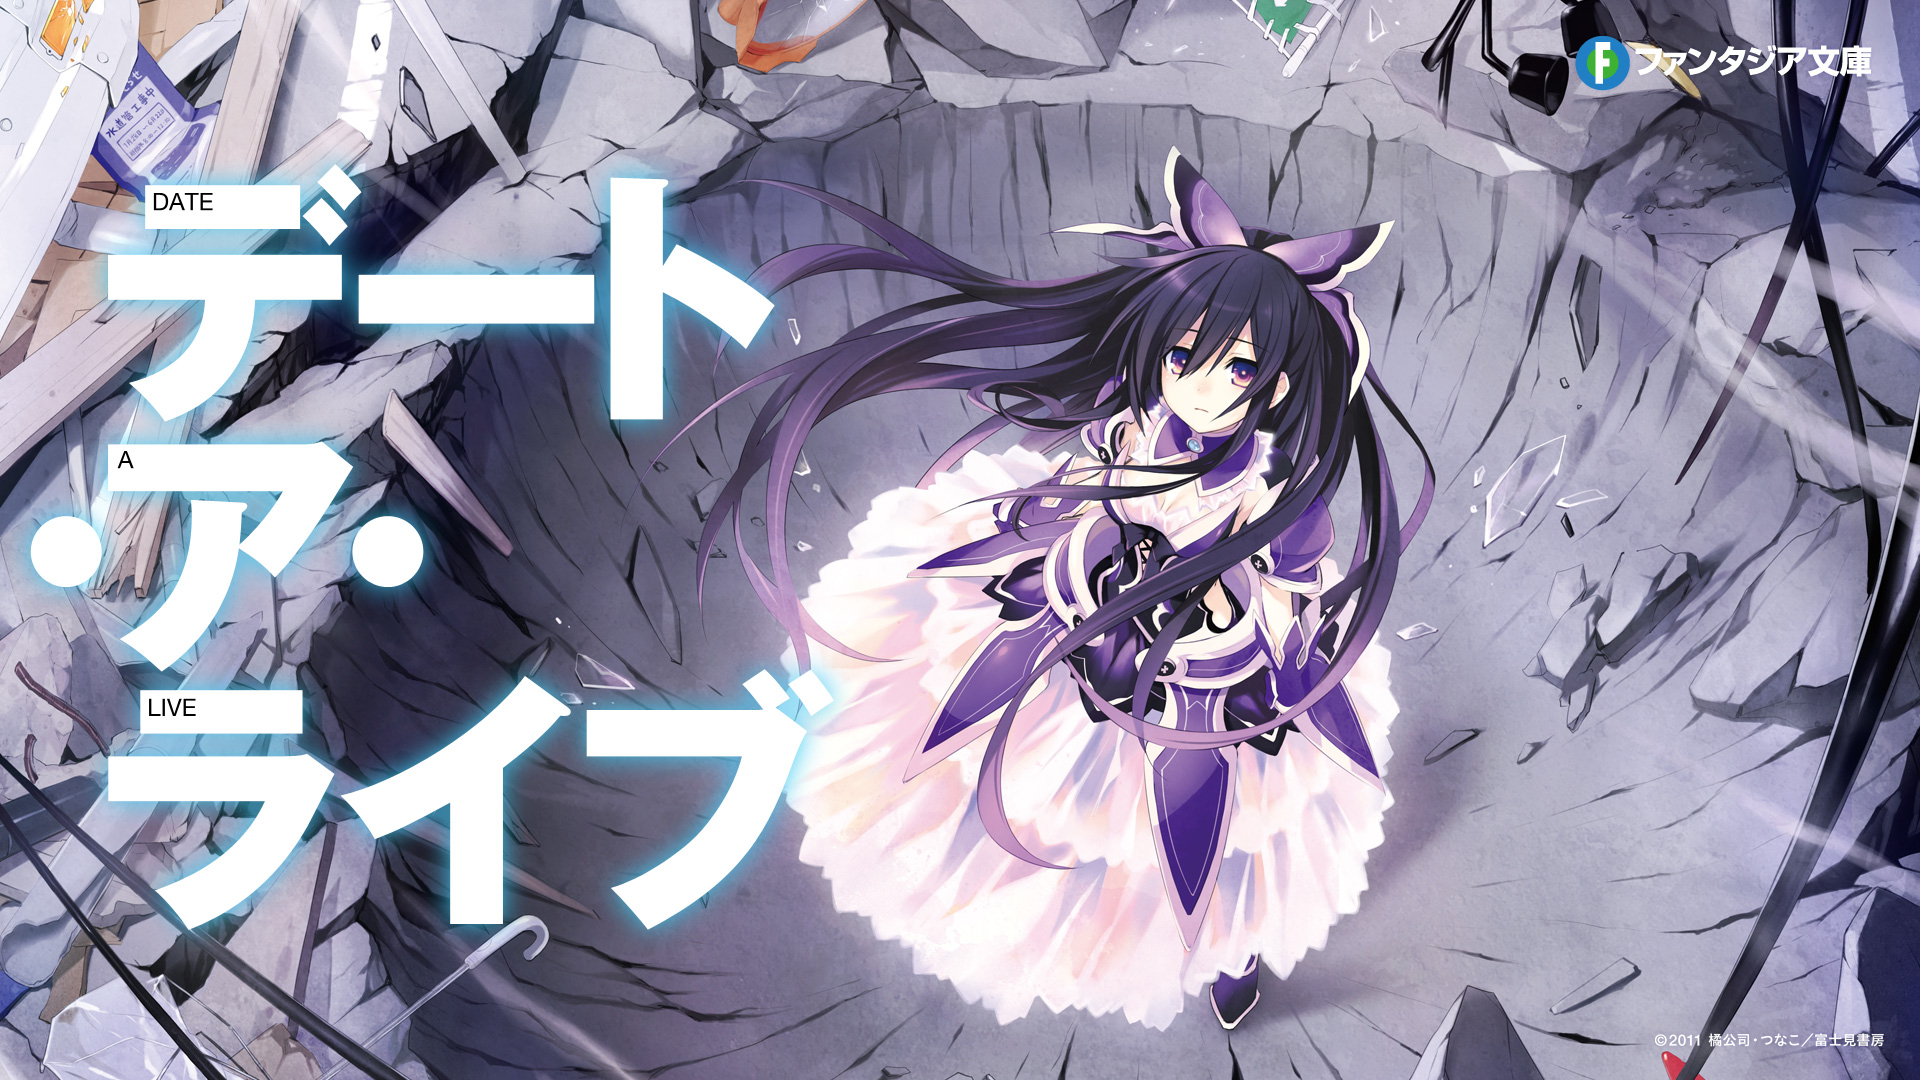 Anime   Date A Live Wallpaper 1920x1080